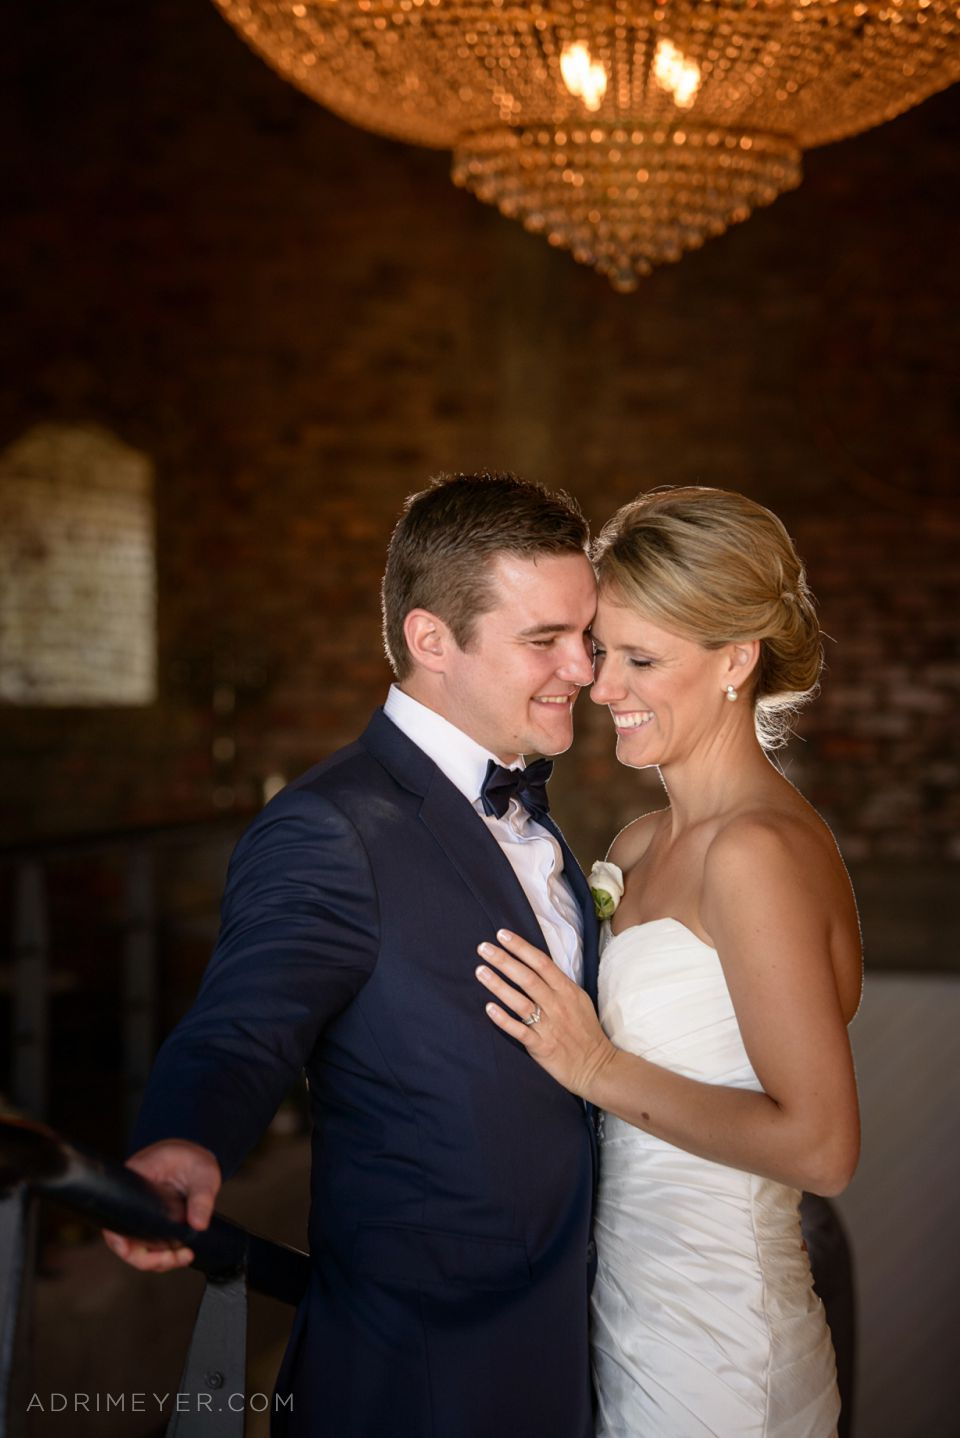 Adri Meyer Wedding Photography Ashanti Paarl_0031